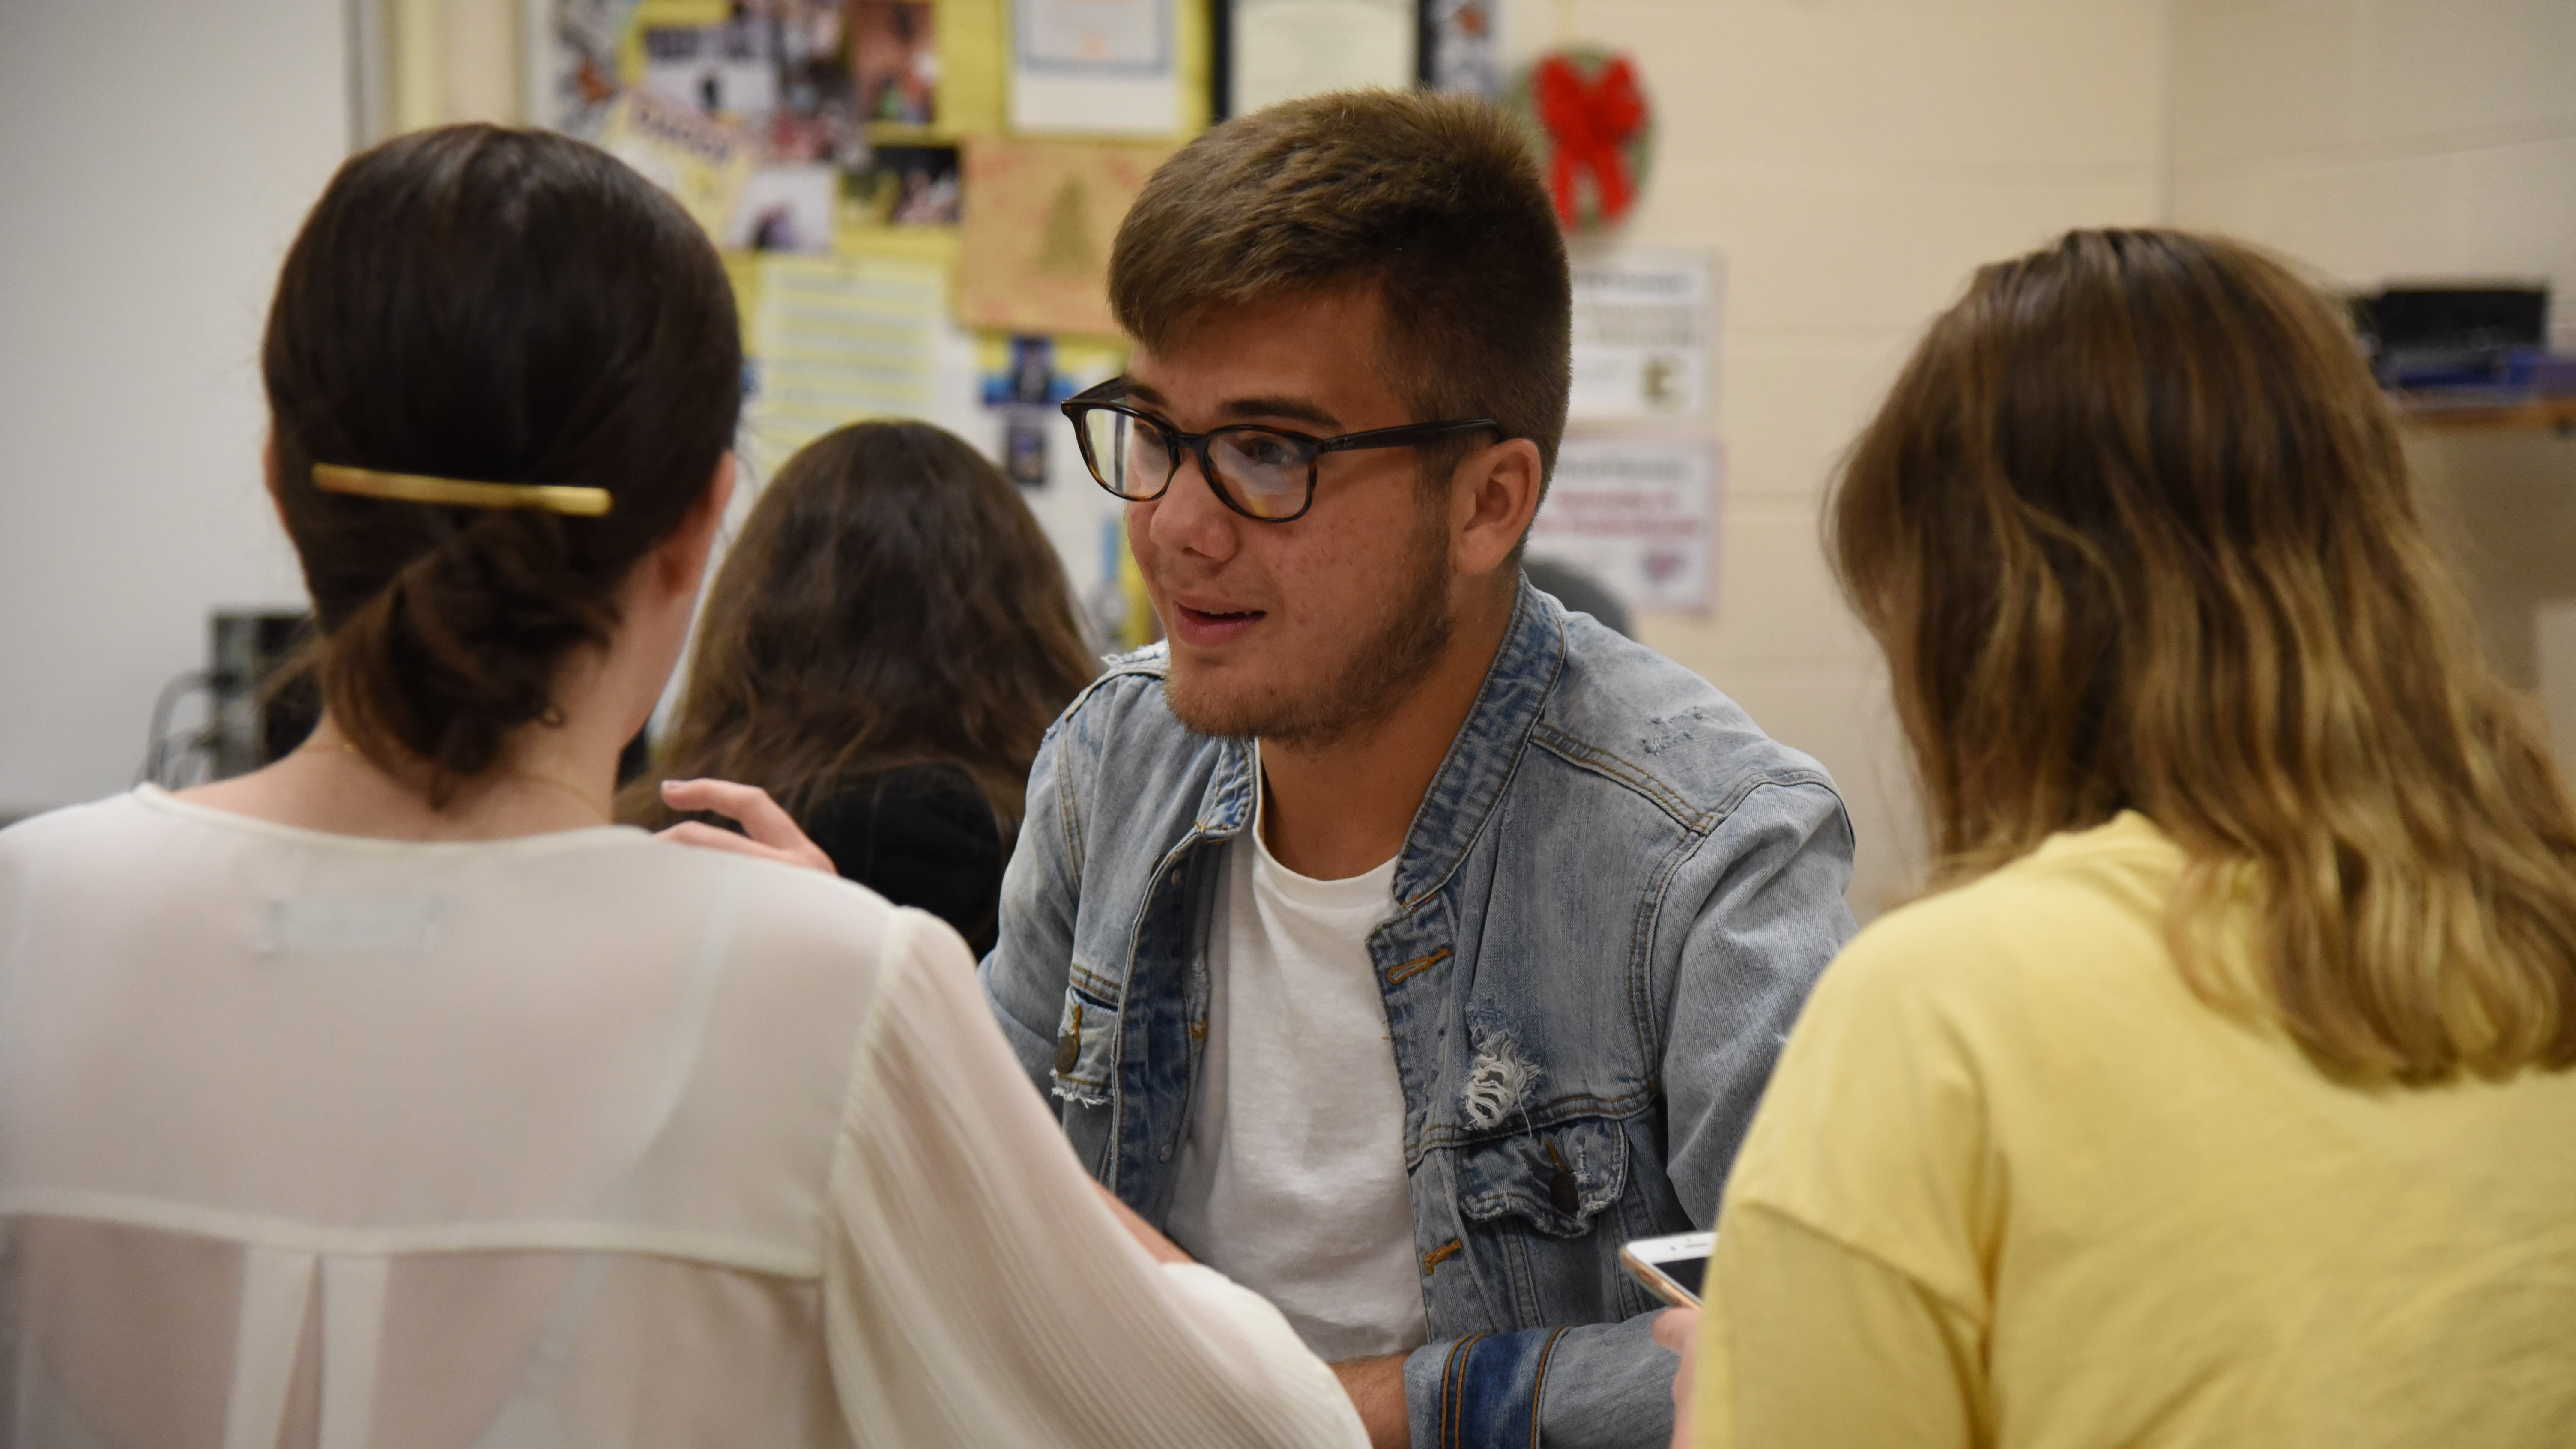 Karns High School senior Noah Kelley, who serves as the Student Representative on the Board of Education, discusses a project with classmates on August 28, 2019.